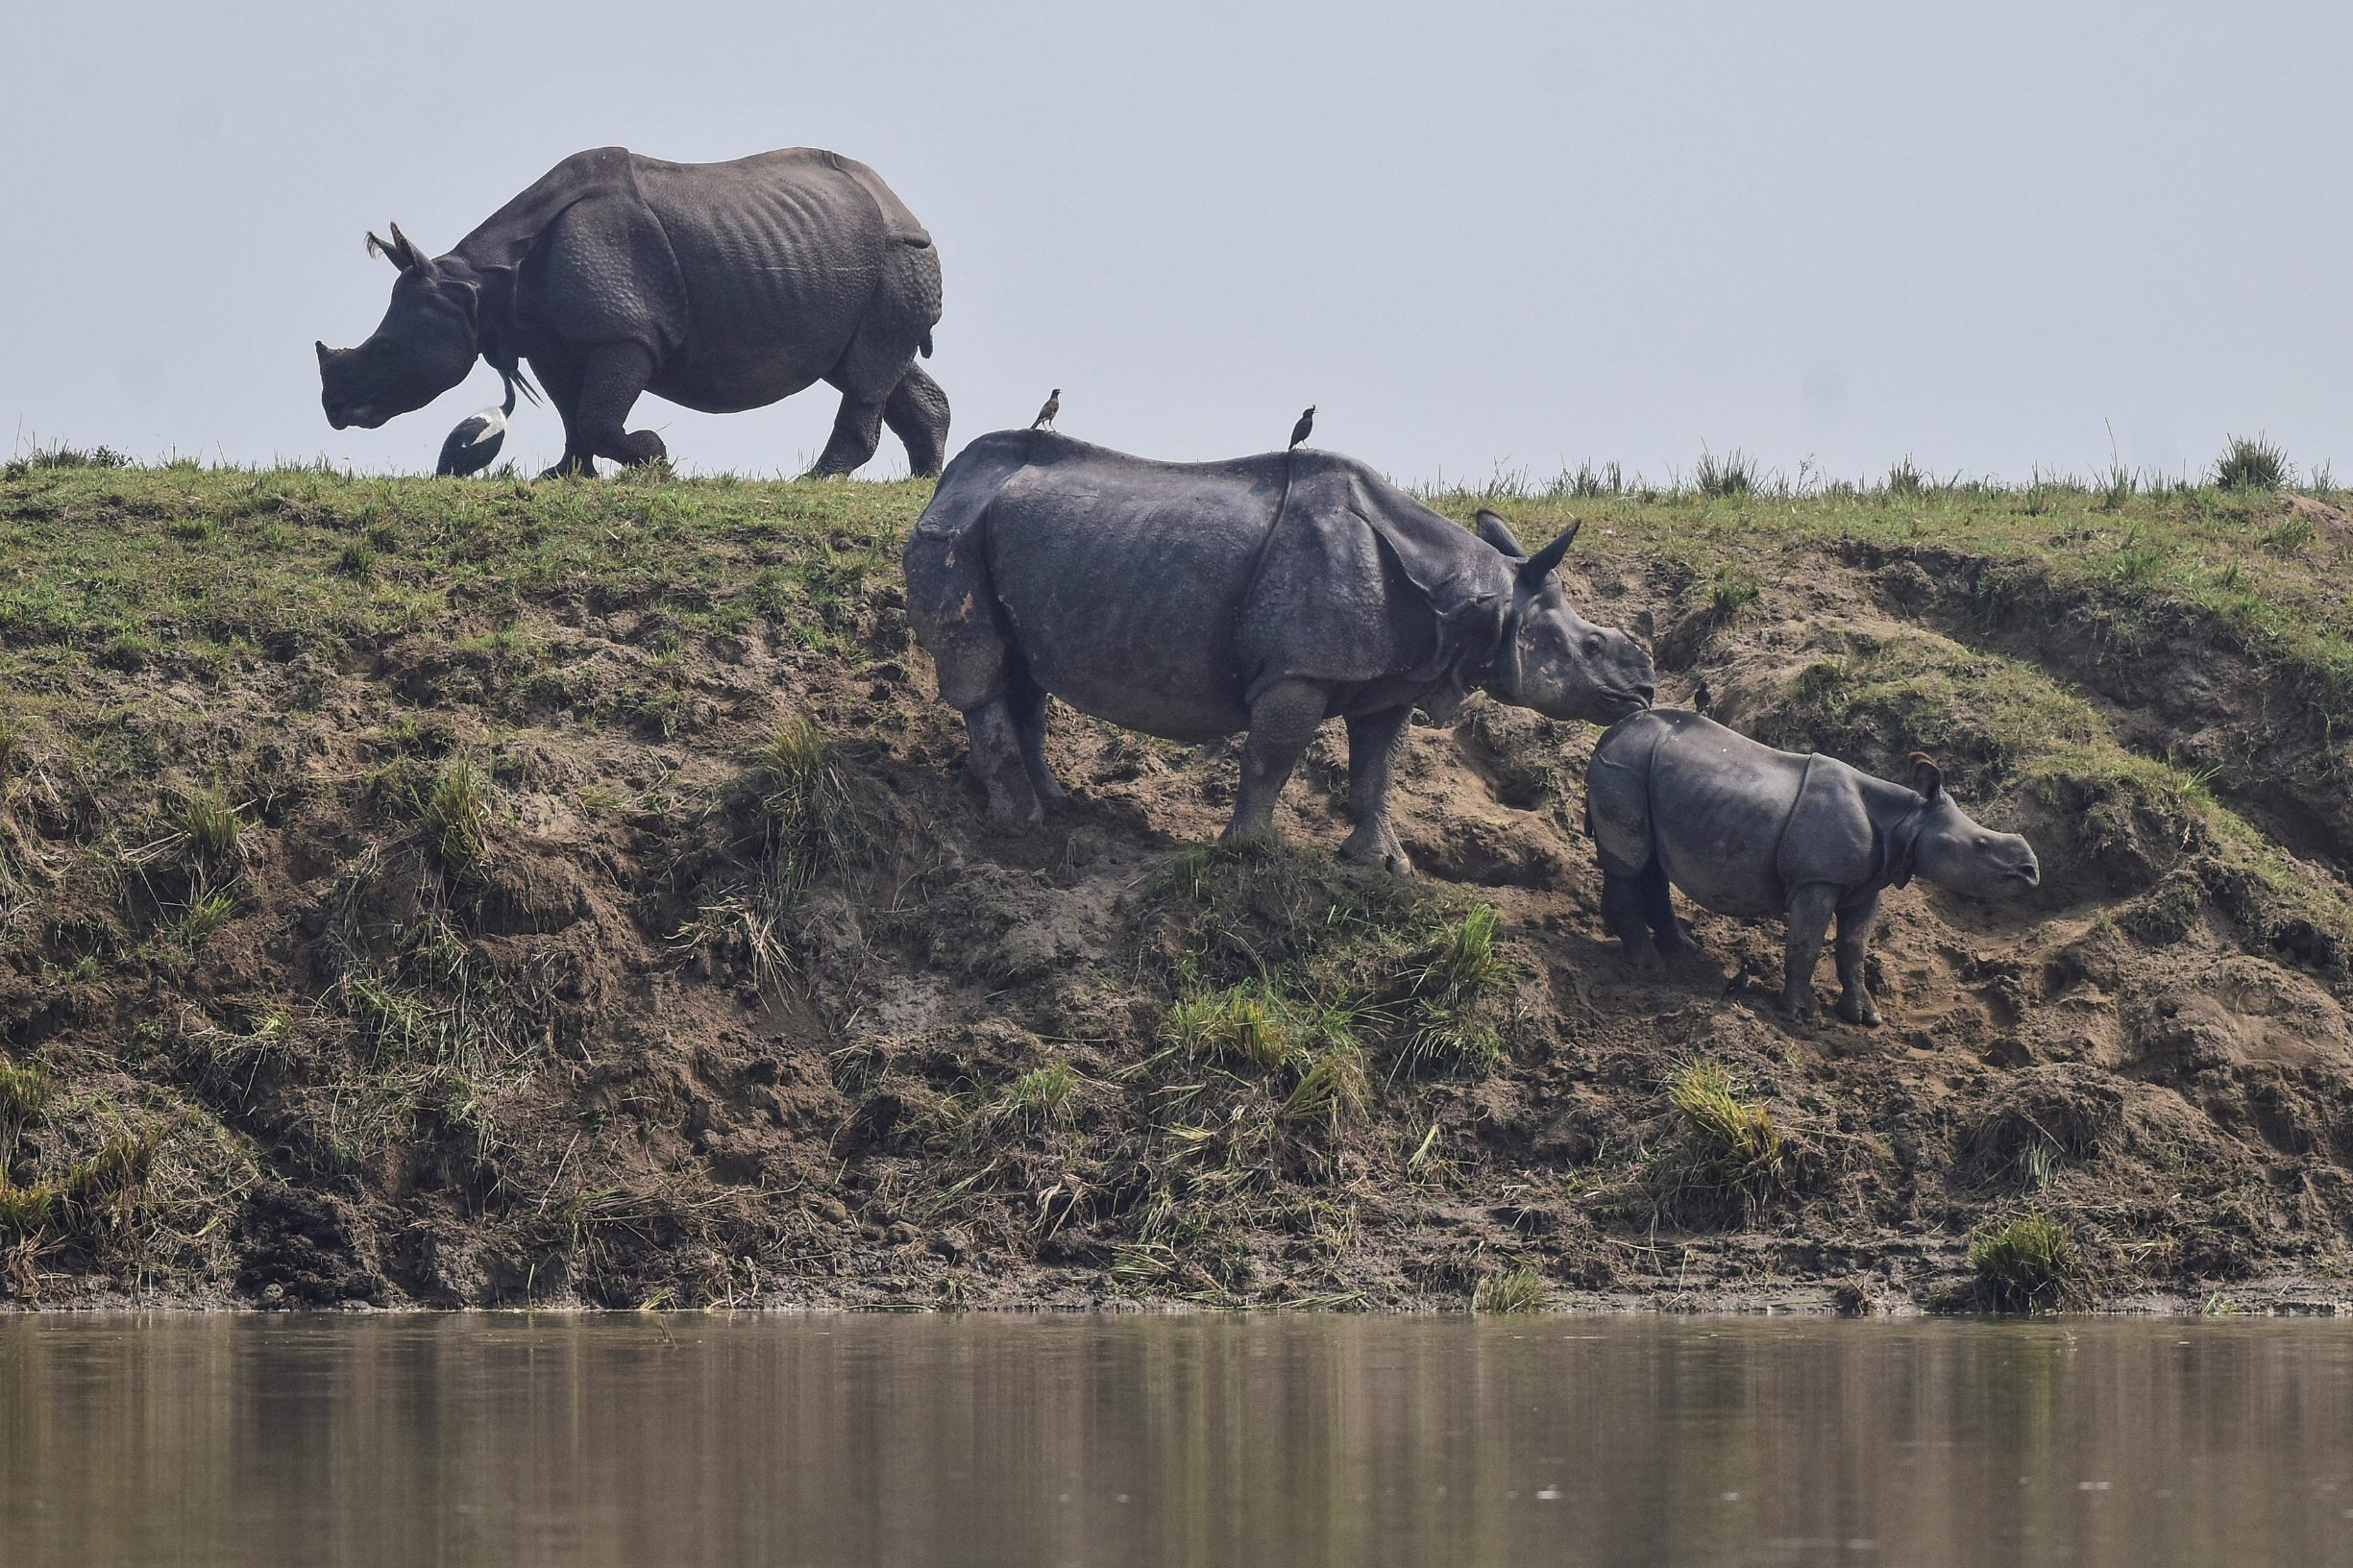 One-horned rhinos take shelter at a highland in the flood affected area of Kaziranga National Park in Nagaon district, in the northeastern state of Assam, India, July 18, 2019. REUTERS/Anuwar Hazarika